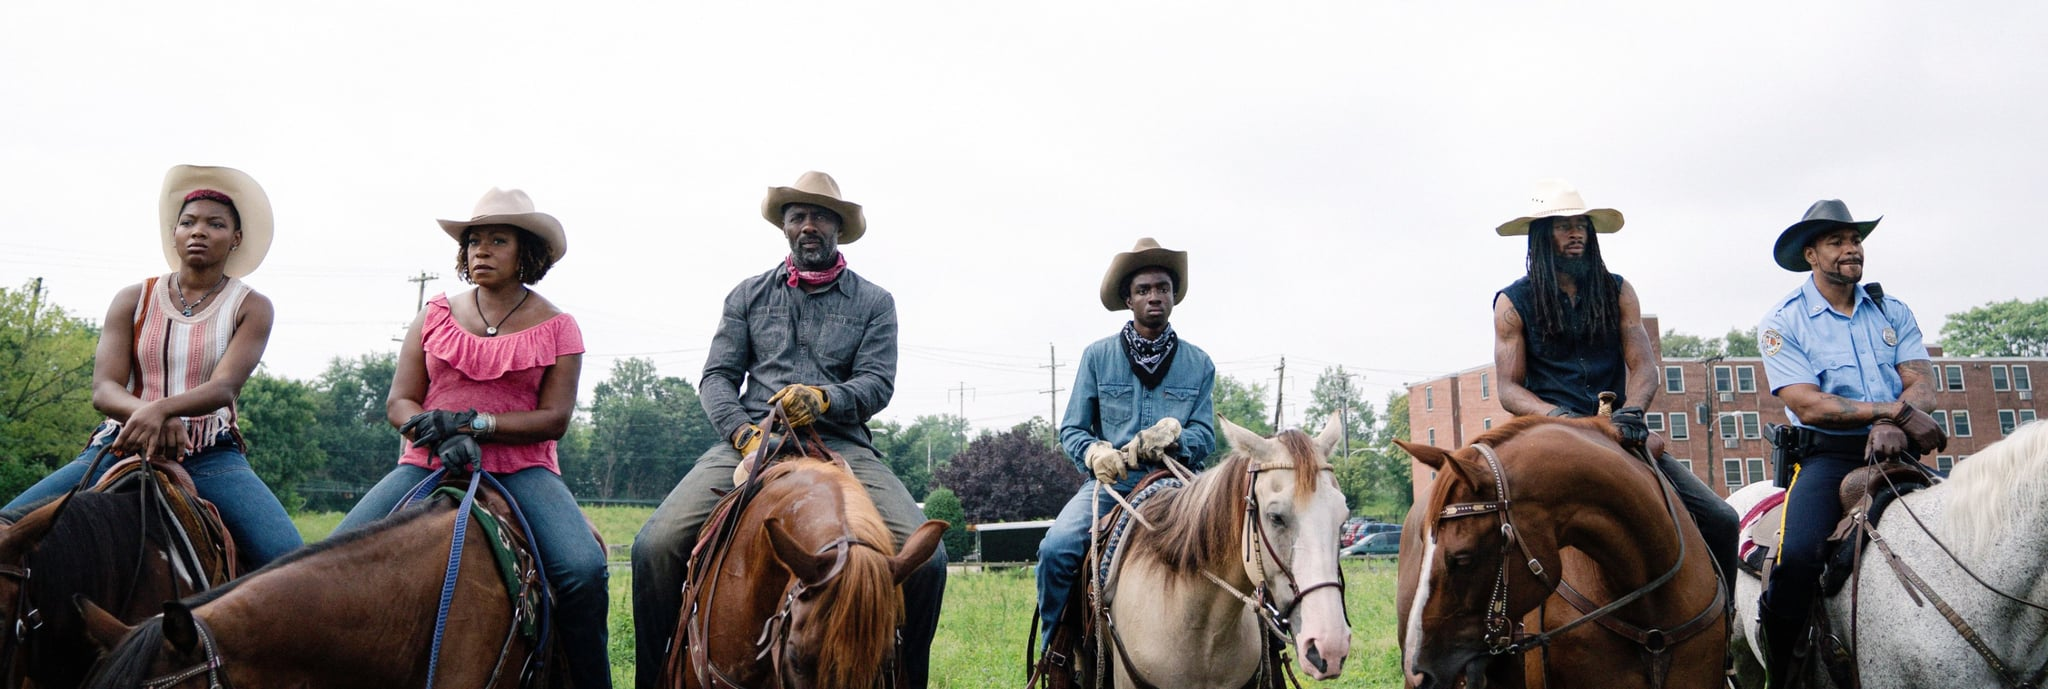 CONCRETE COWBOY, from left: Ivannah-Mercedes, Lorraine Toussaint, Idris Elba, Caleb McLaughlin, Jamil Prattis, Method Man, 2020.  ph: Jessica Kourkounis / Netflix / Courtesy Everett Collection